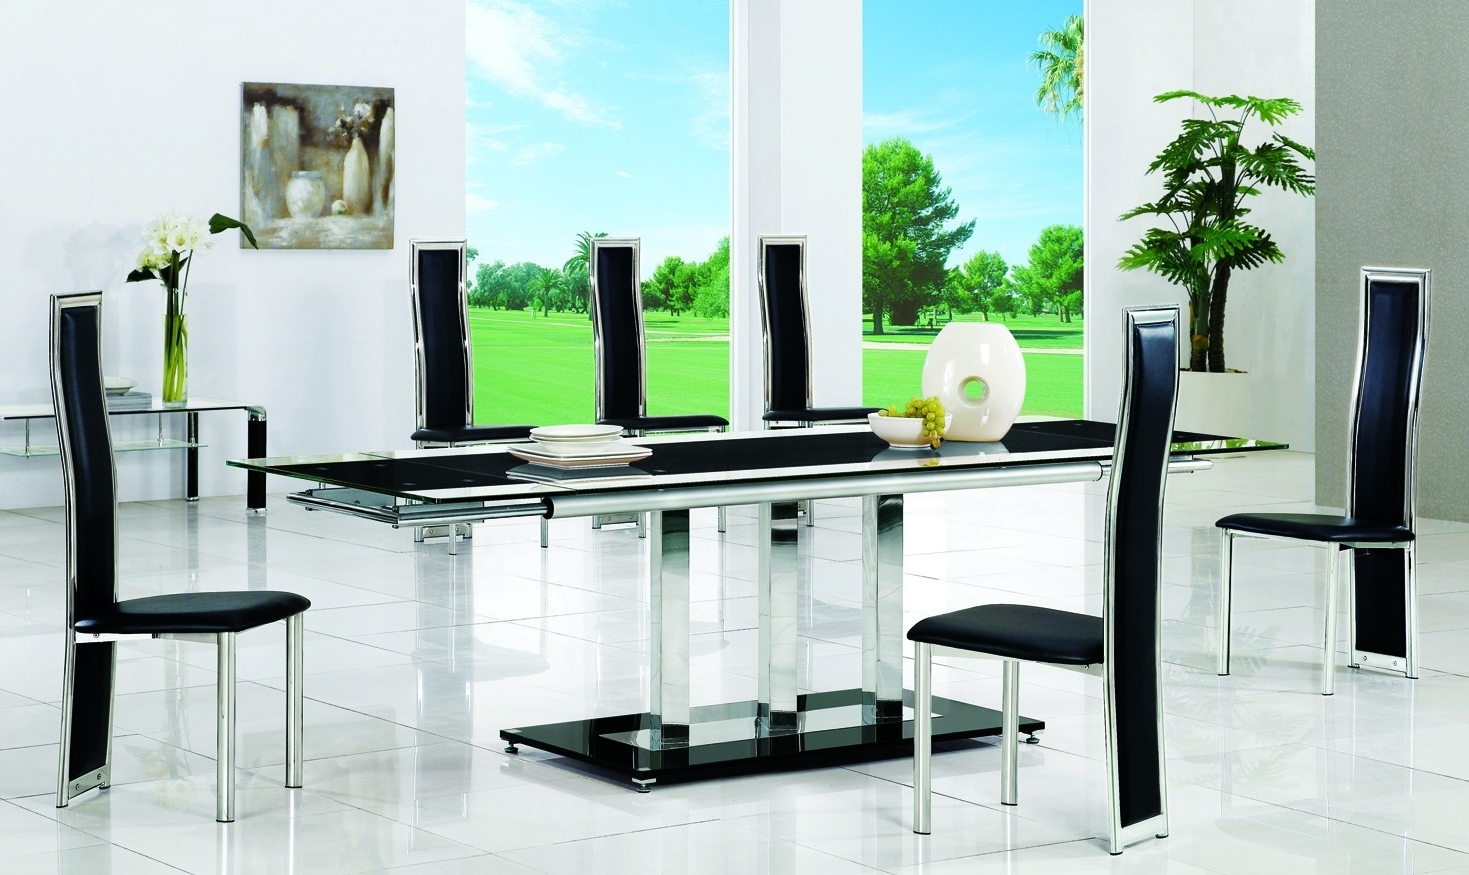 Fashionable Black 8 Seater Dining Tables With Regard To Amusing Glass Dining Table Design Featuring Rectangle Shape Pedestal (View 21 of 25)